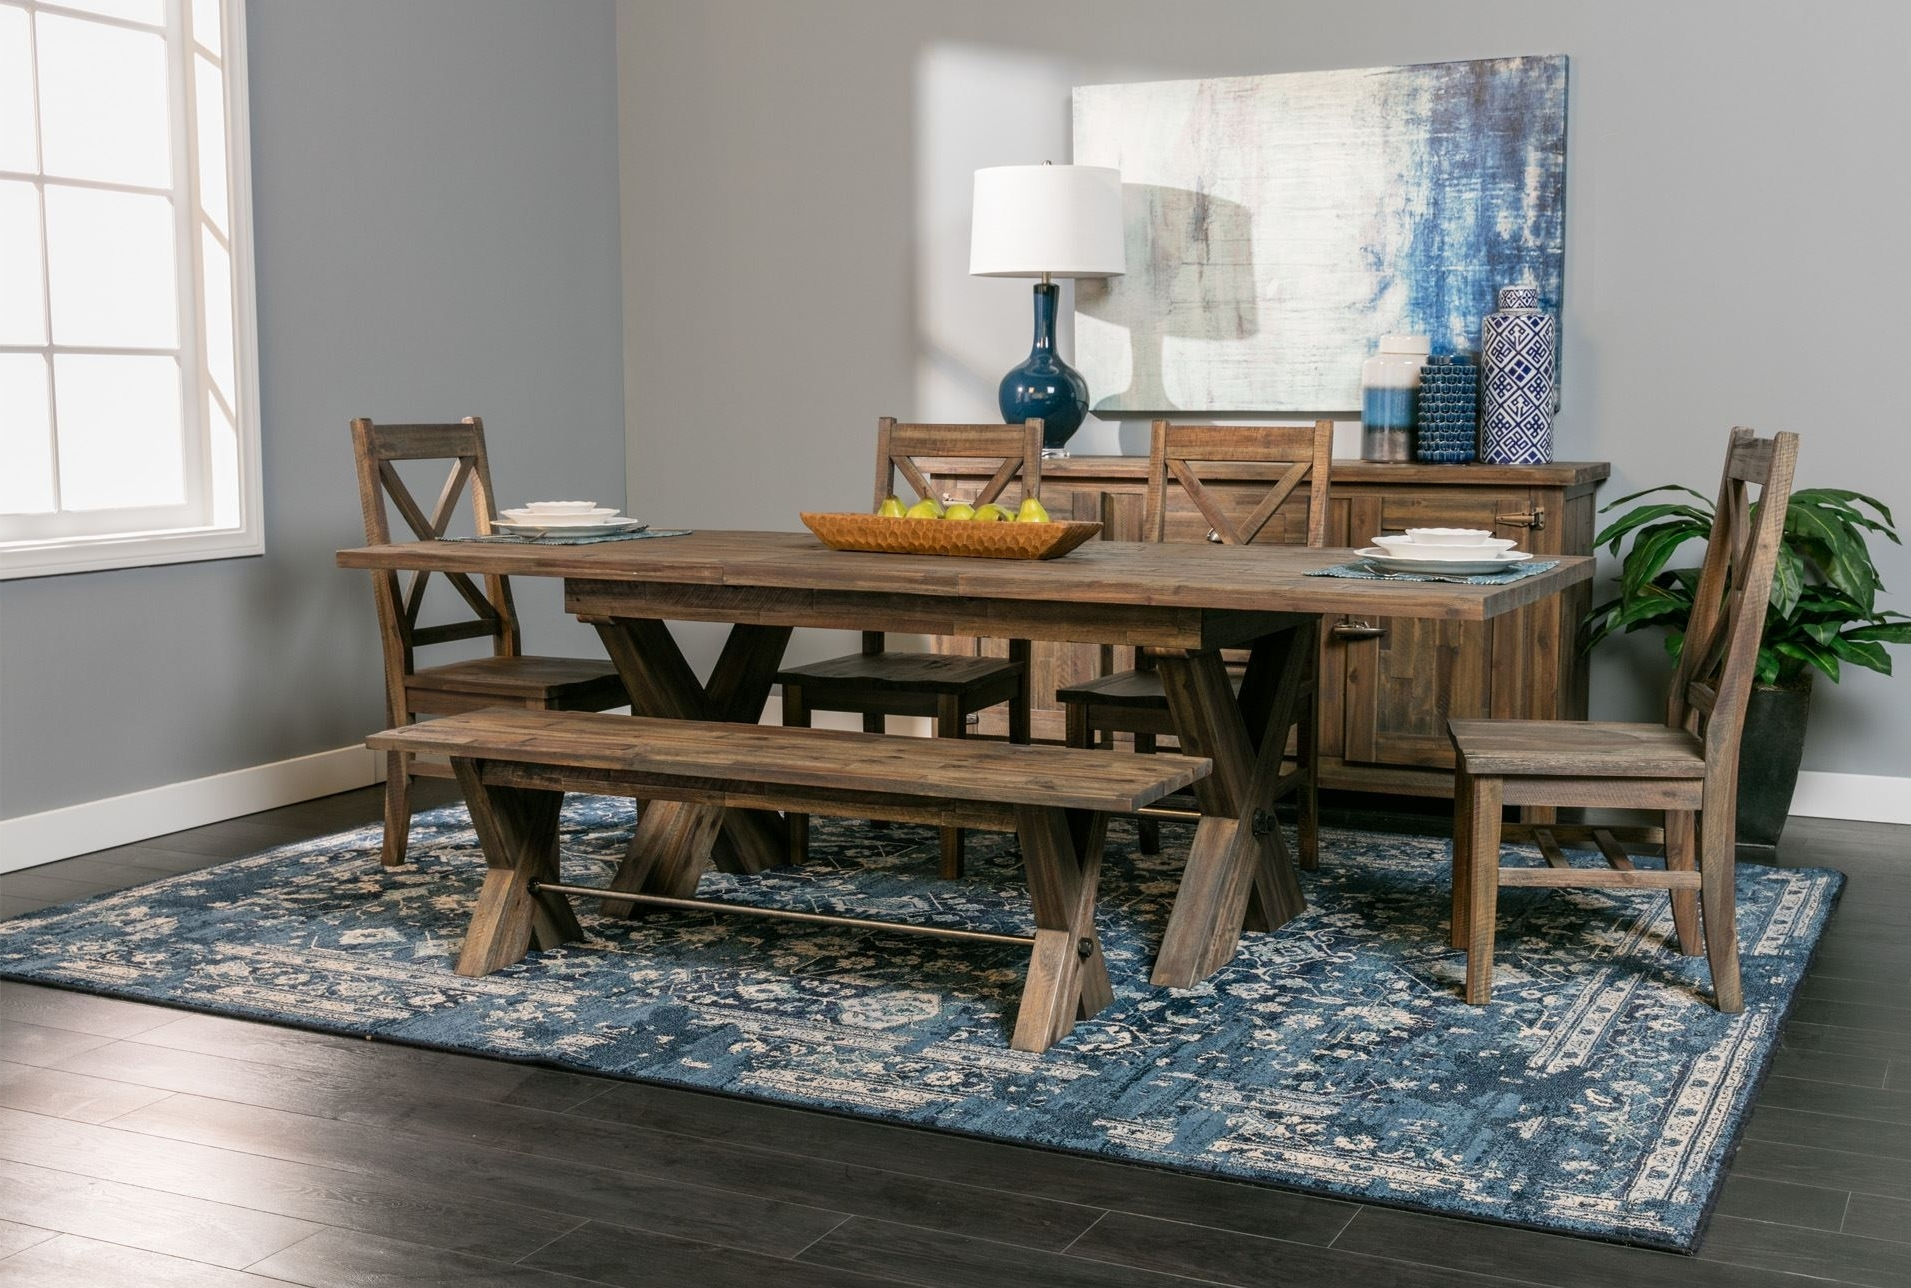 Widely Used Weaver Ii Dining Tables Intended For Weaver Dining Table Household Remodel For Living Spaces Dining (View 25 of 25)